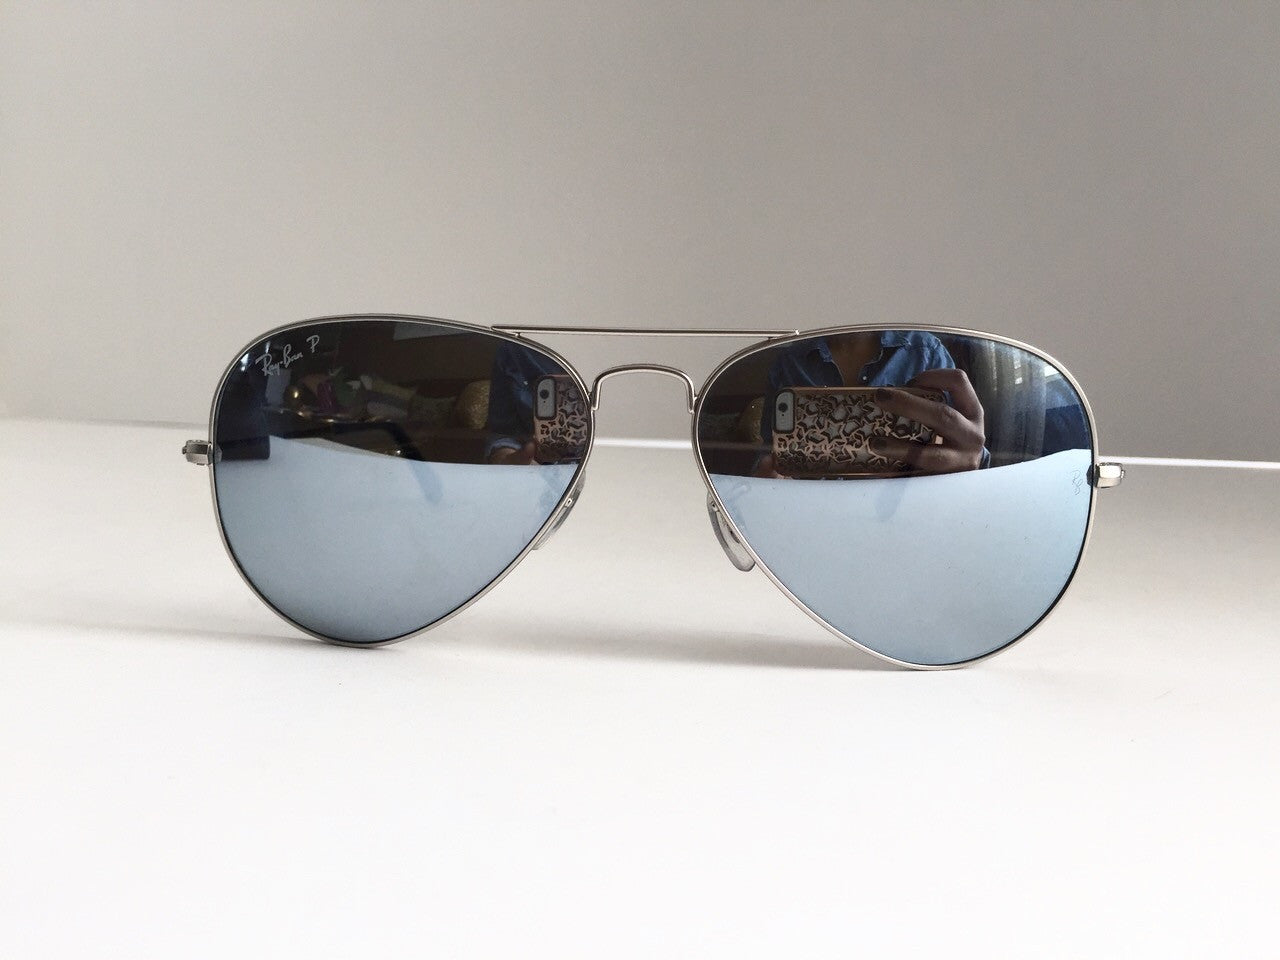 d83babb67b62 Ray-Ban RB3025 Silver Mirrored Polarized Aviator Sunglasses ...